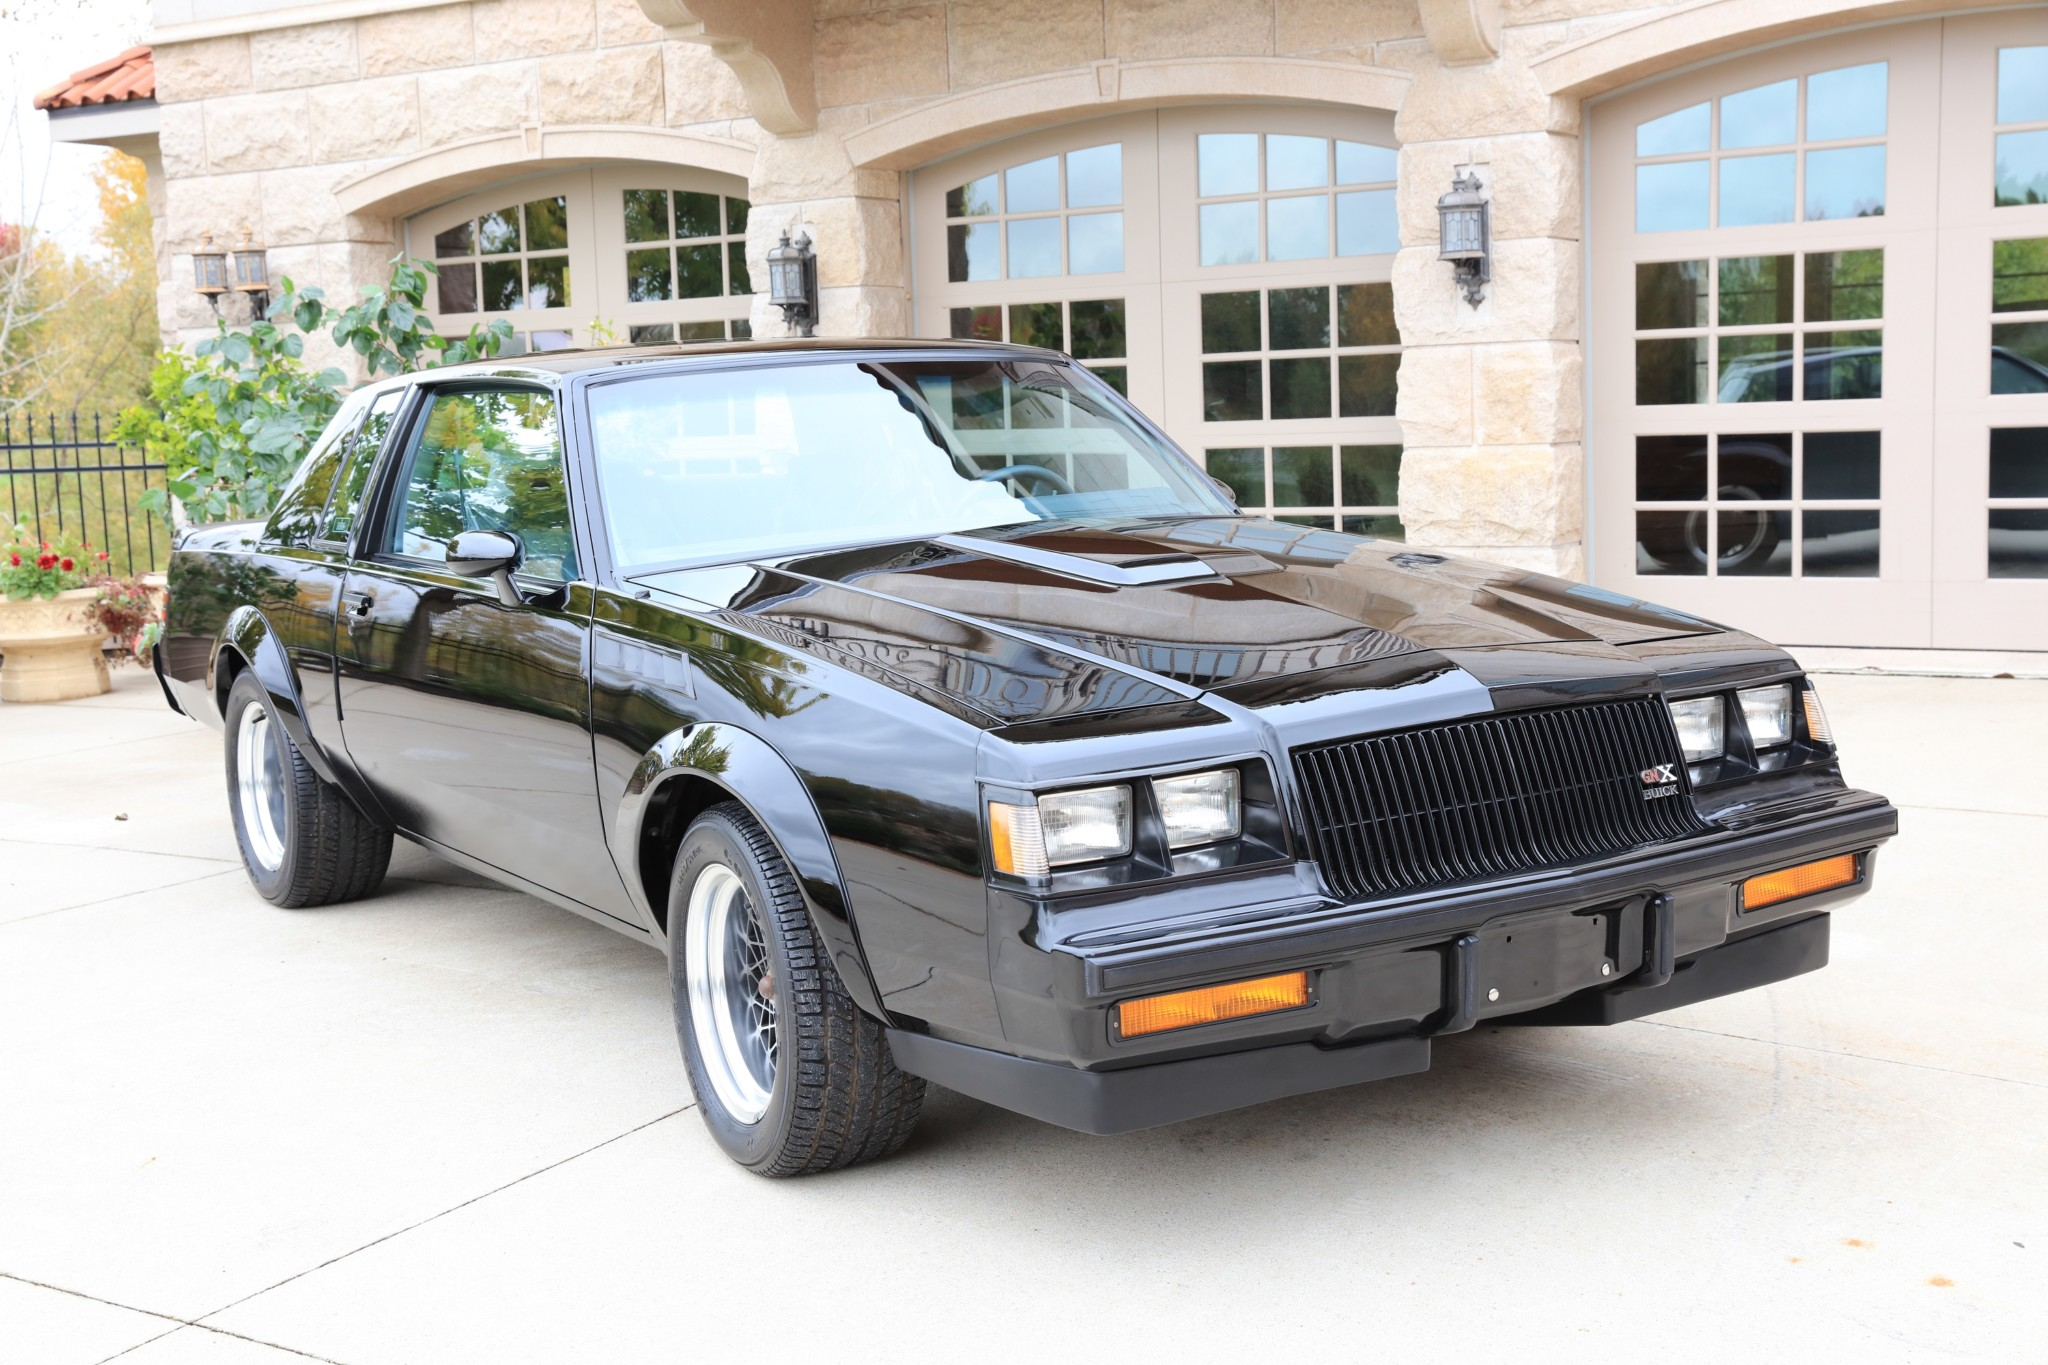 $200K for a 1987 Buick GNX with 8.5 miles isn't as crazy as it sounds